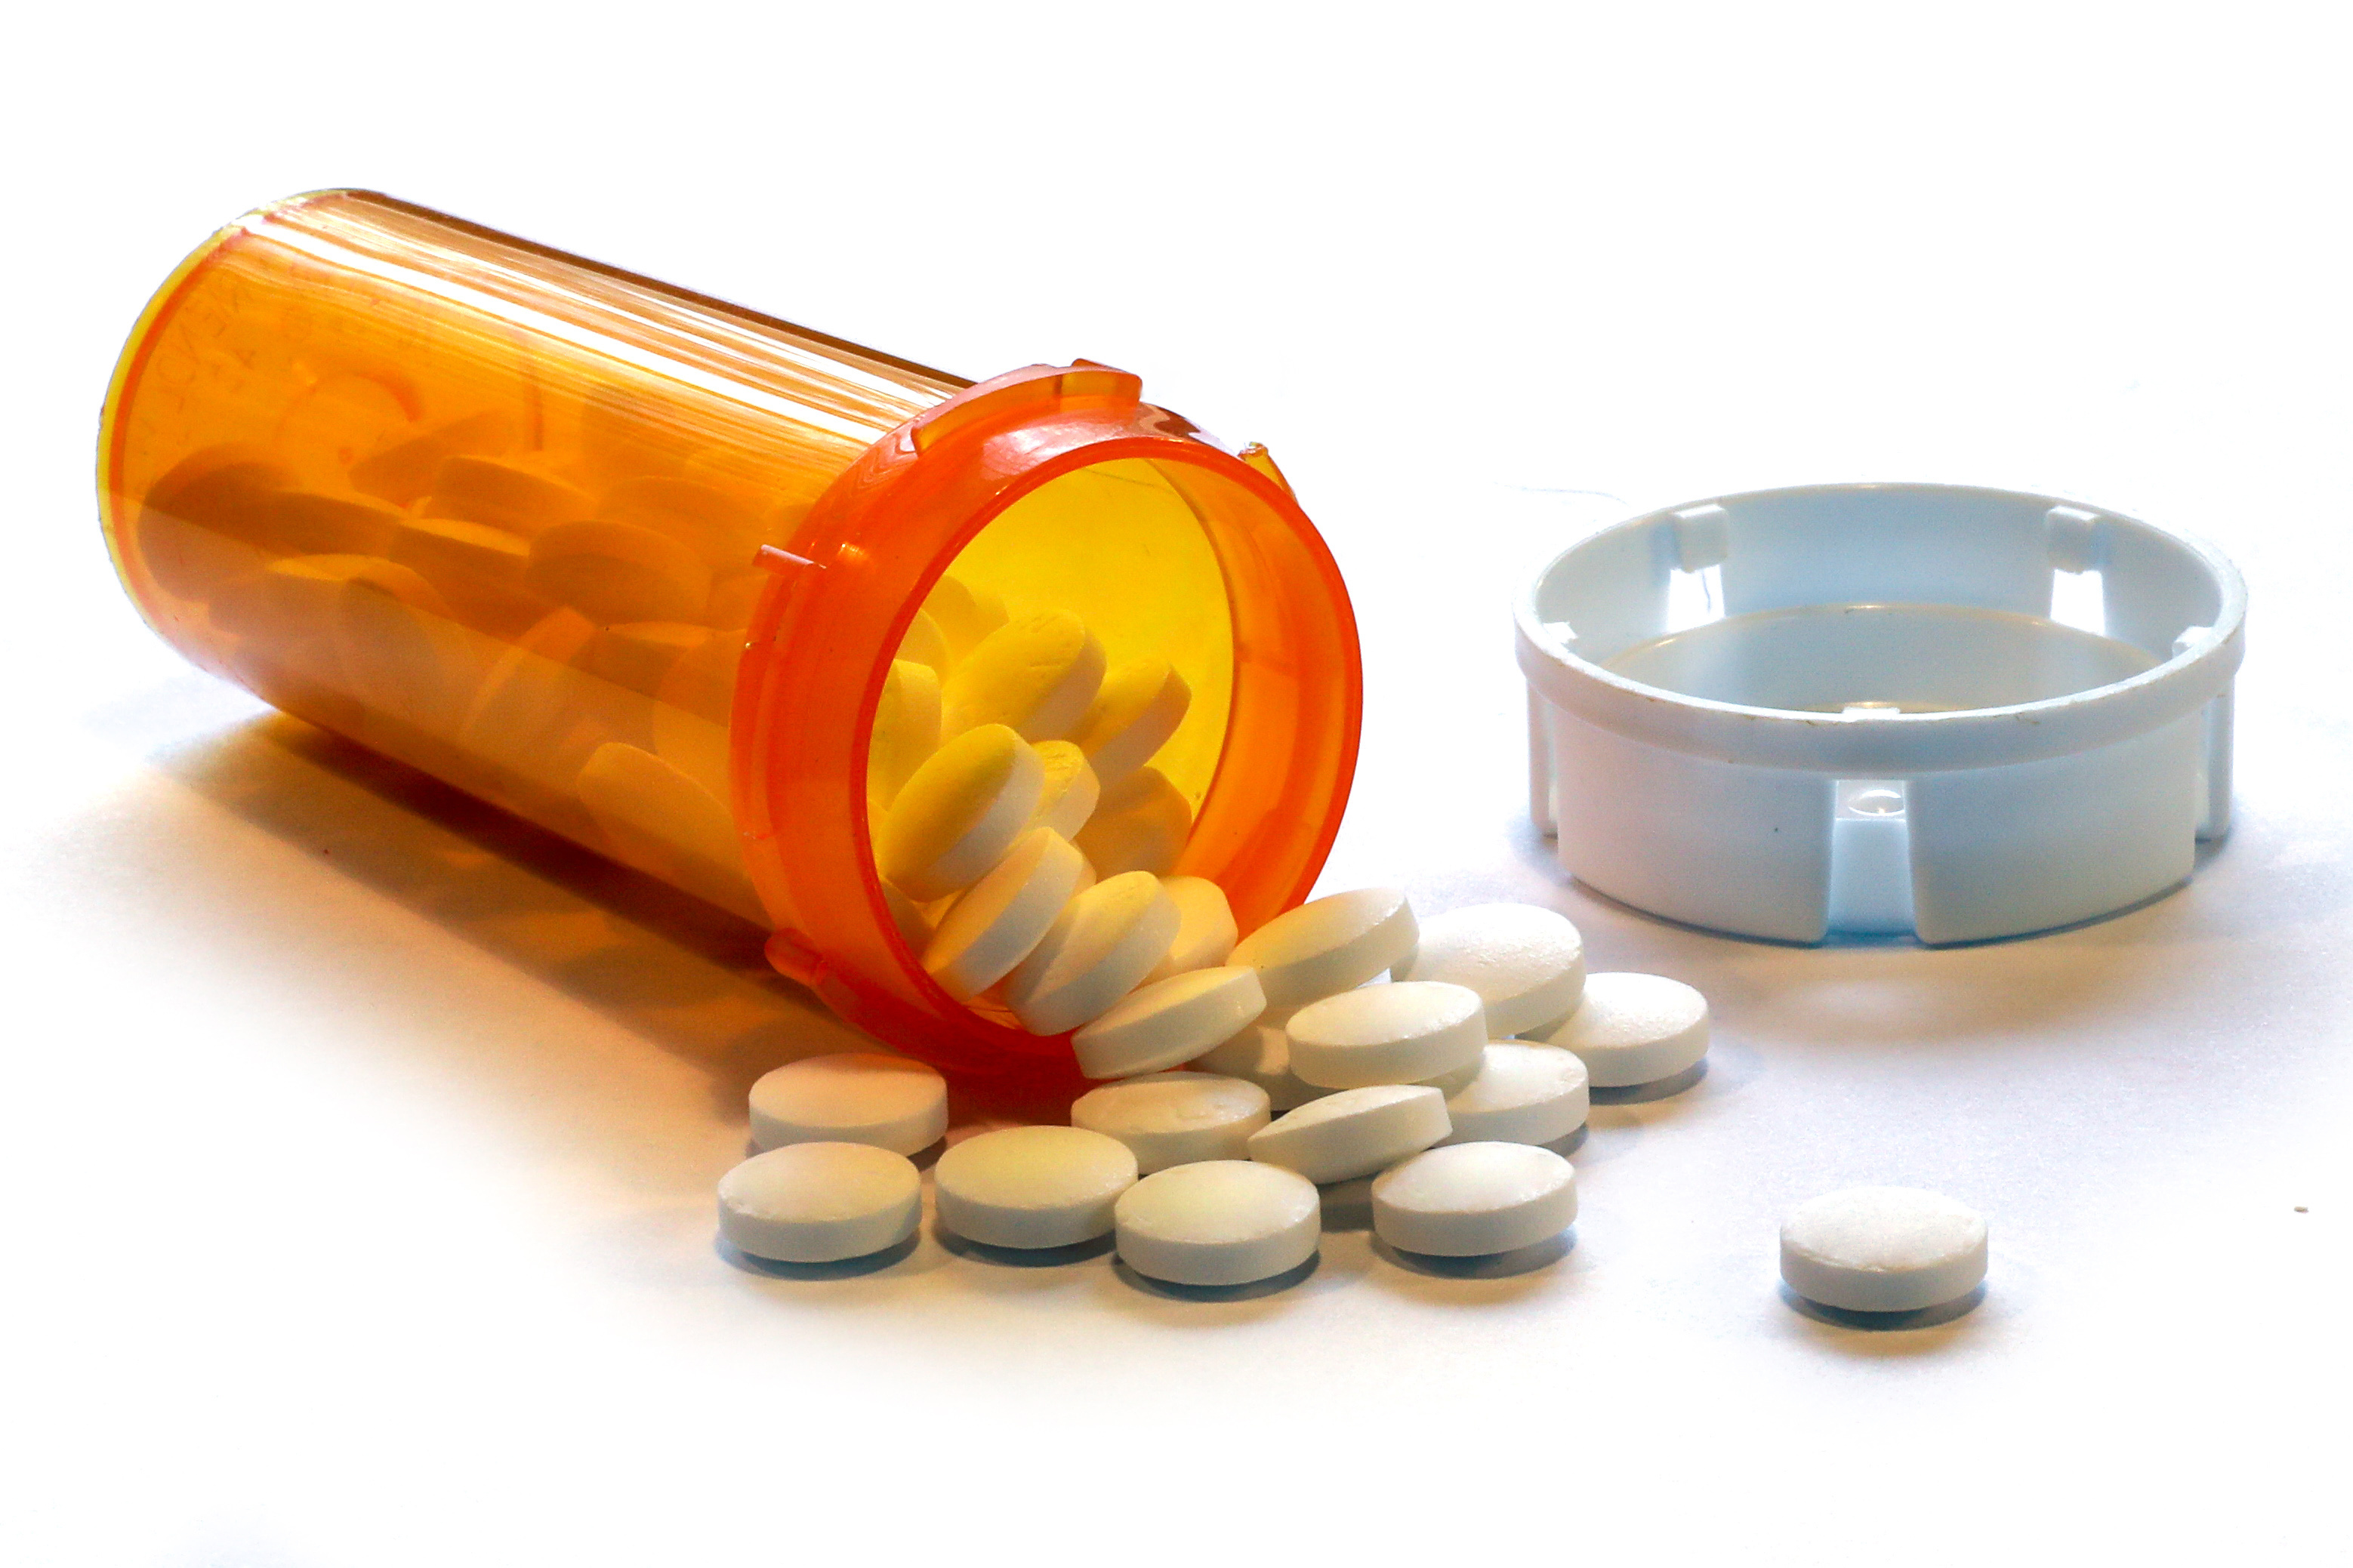 prescribing opioids for chronic pain